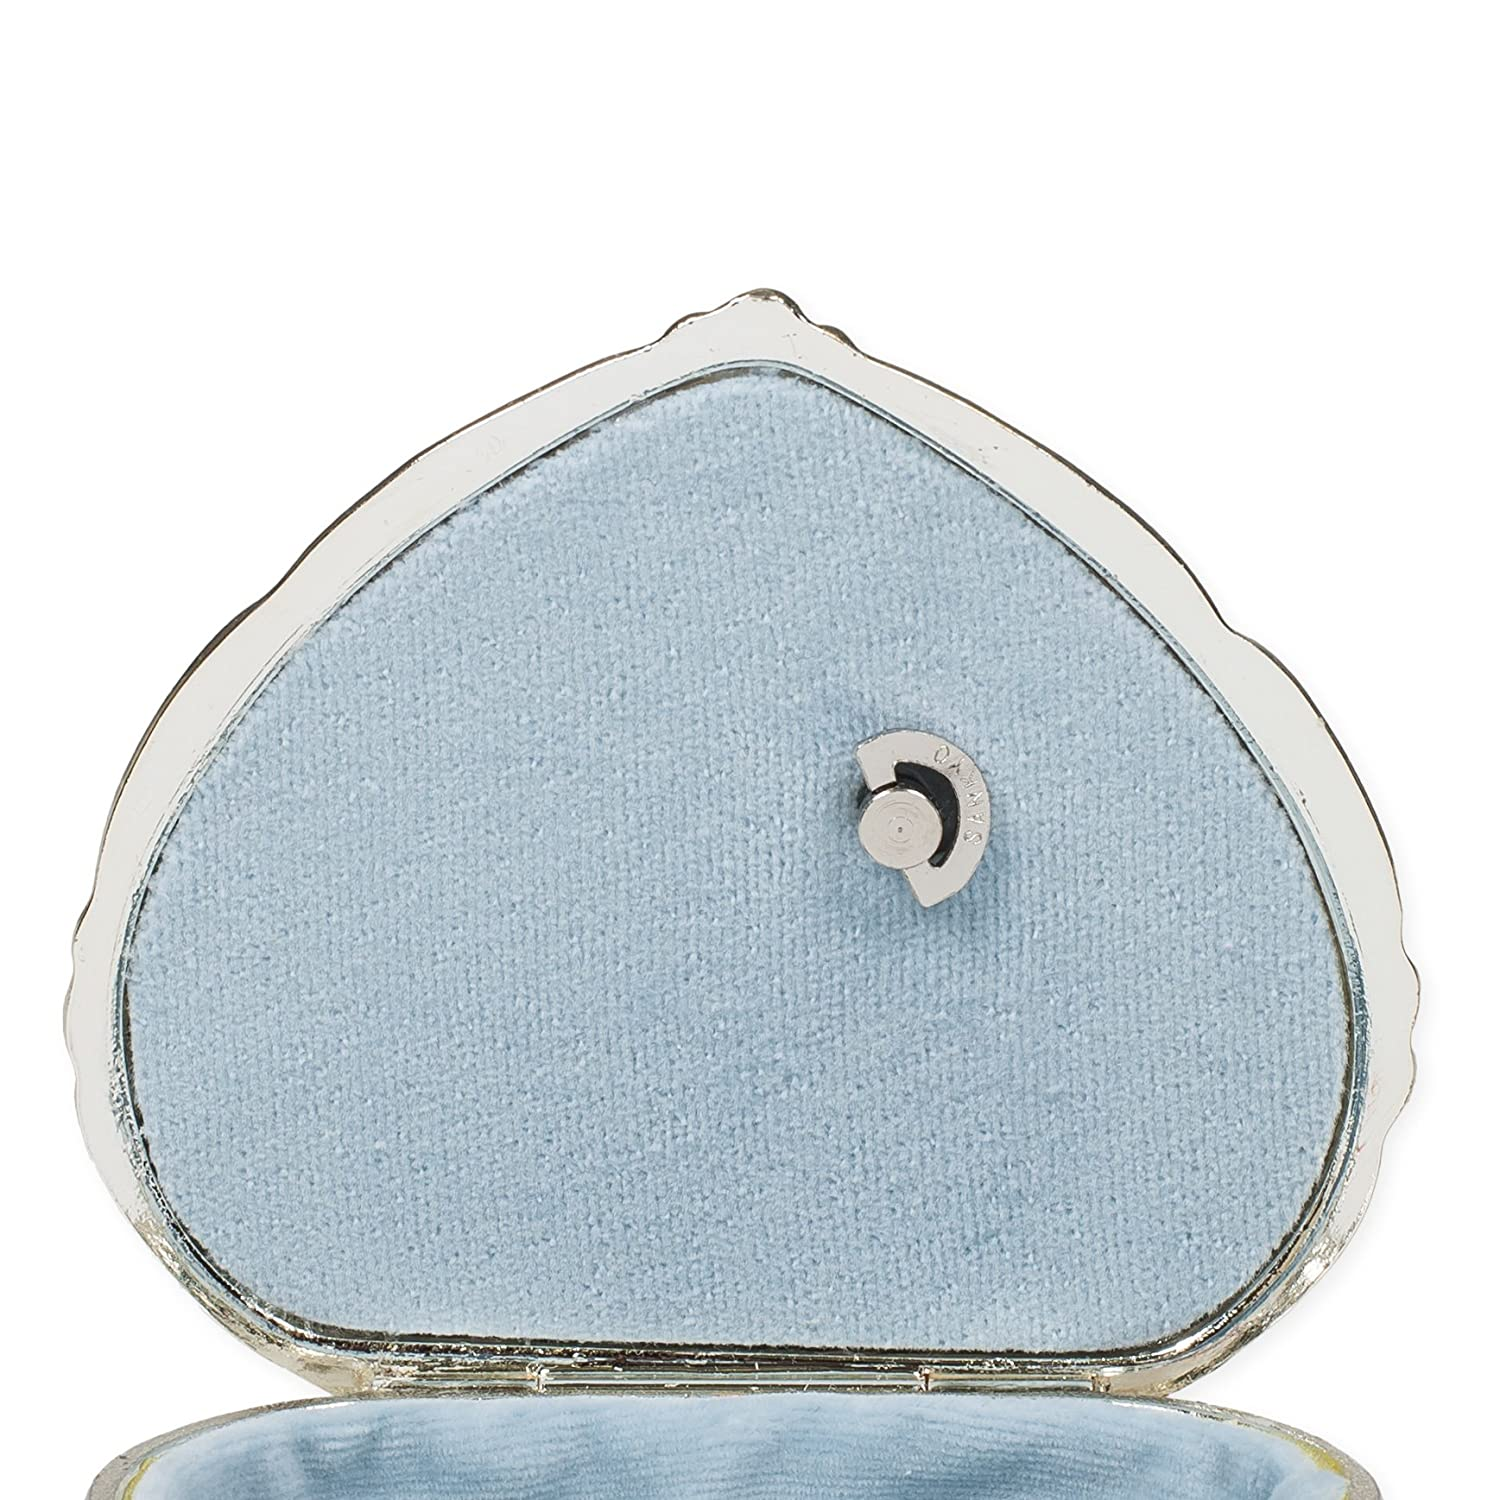 Periwinkle Blue Velvet Heart Shaped Silver Tone Metal Music Box Plays Waltz of the Flowers Splendid Music Box Co.